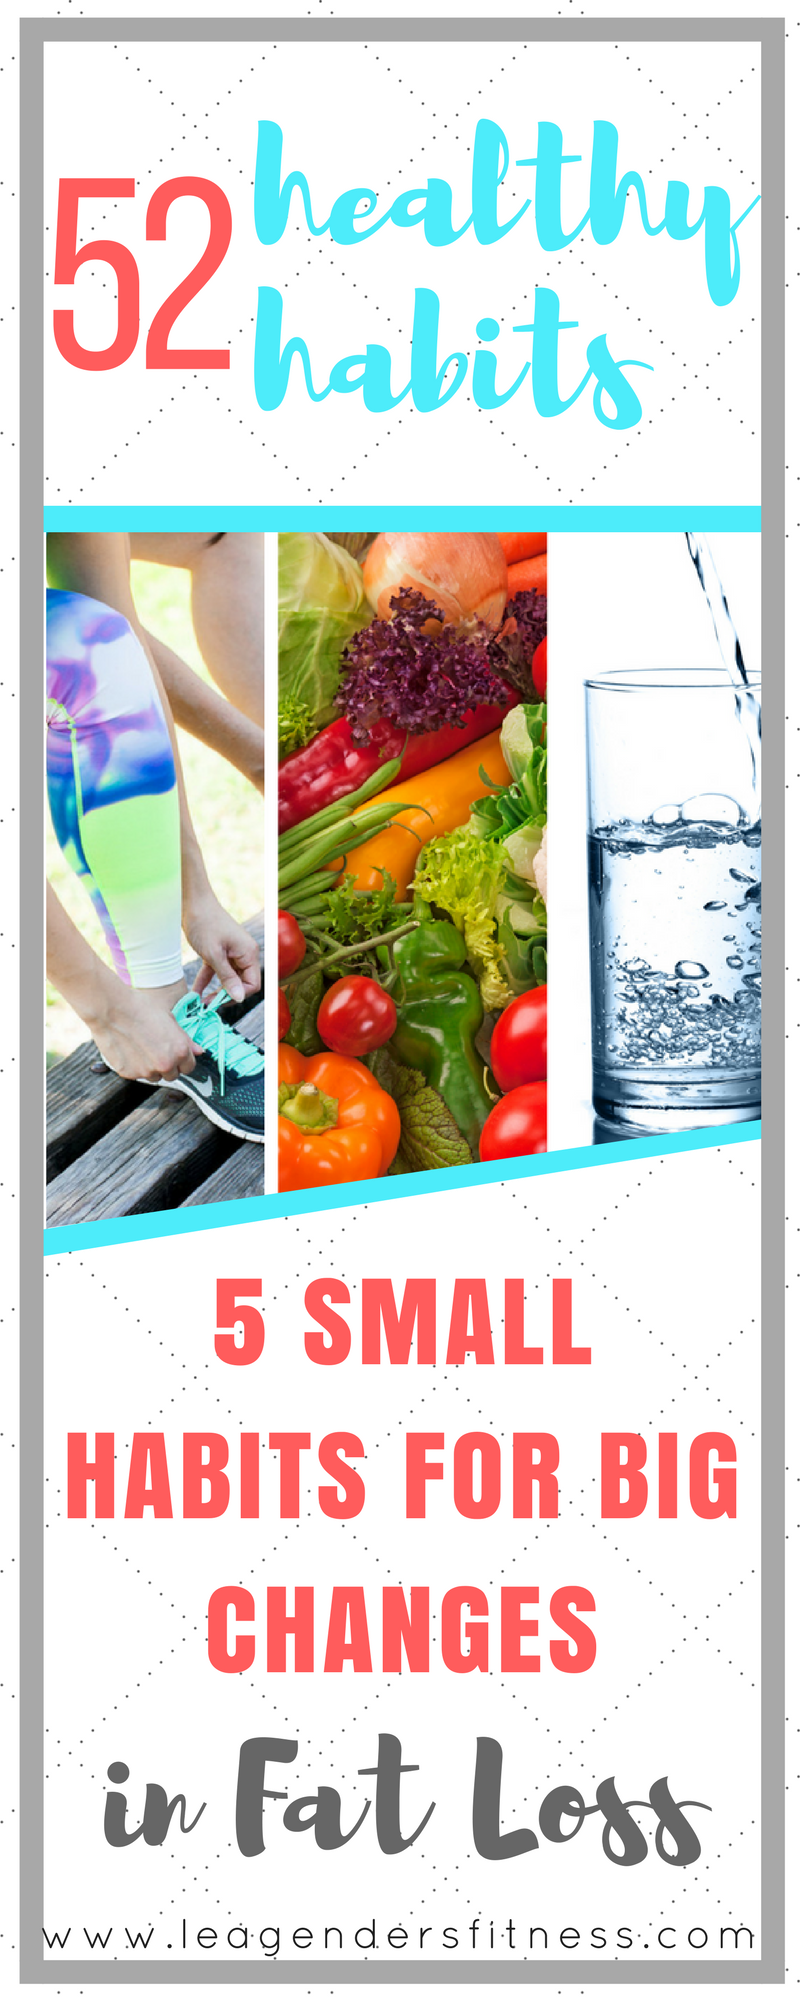 healthy habits 5 small habits for big changes in fat loss.png